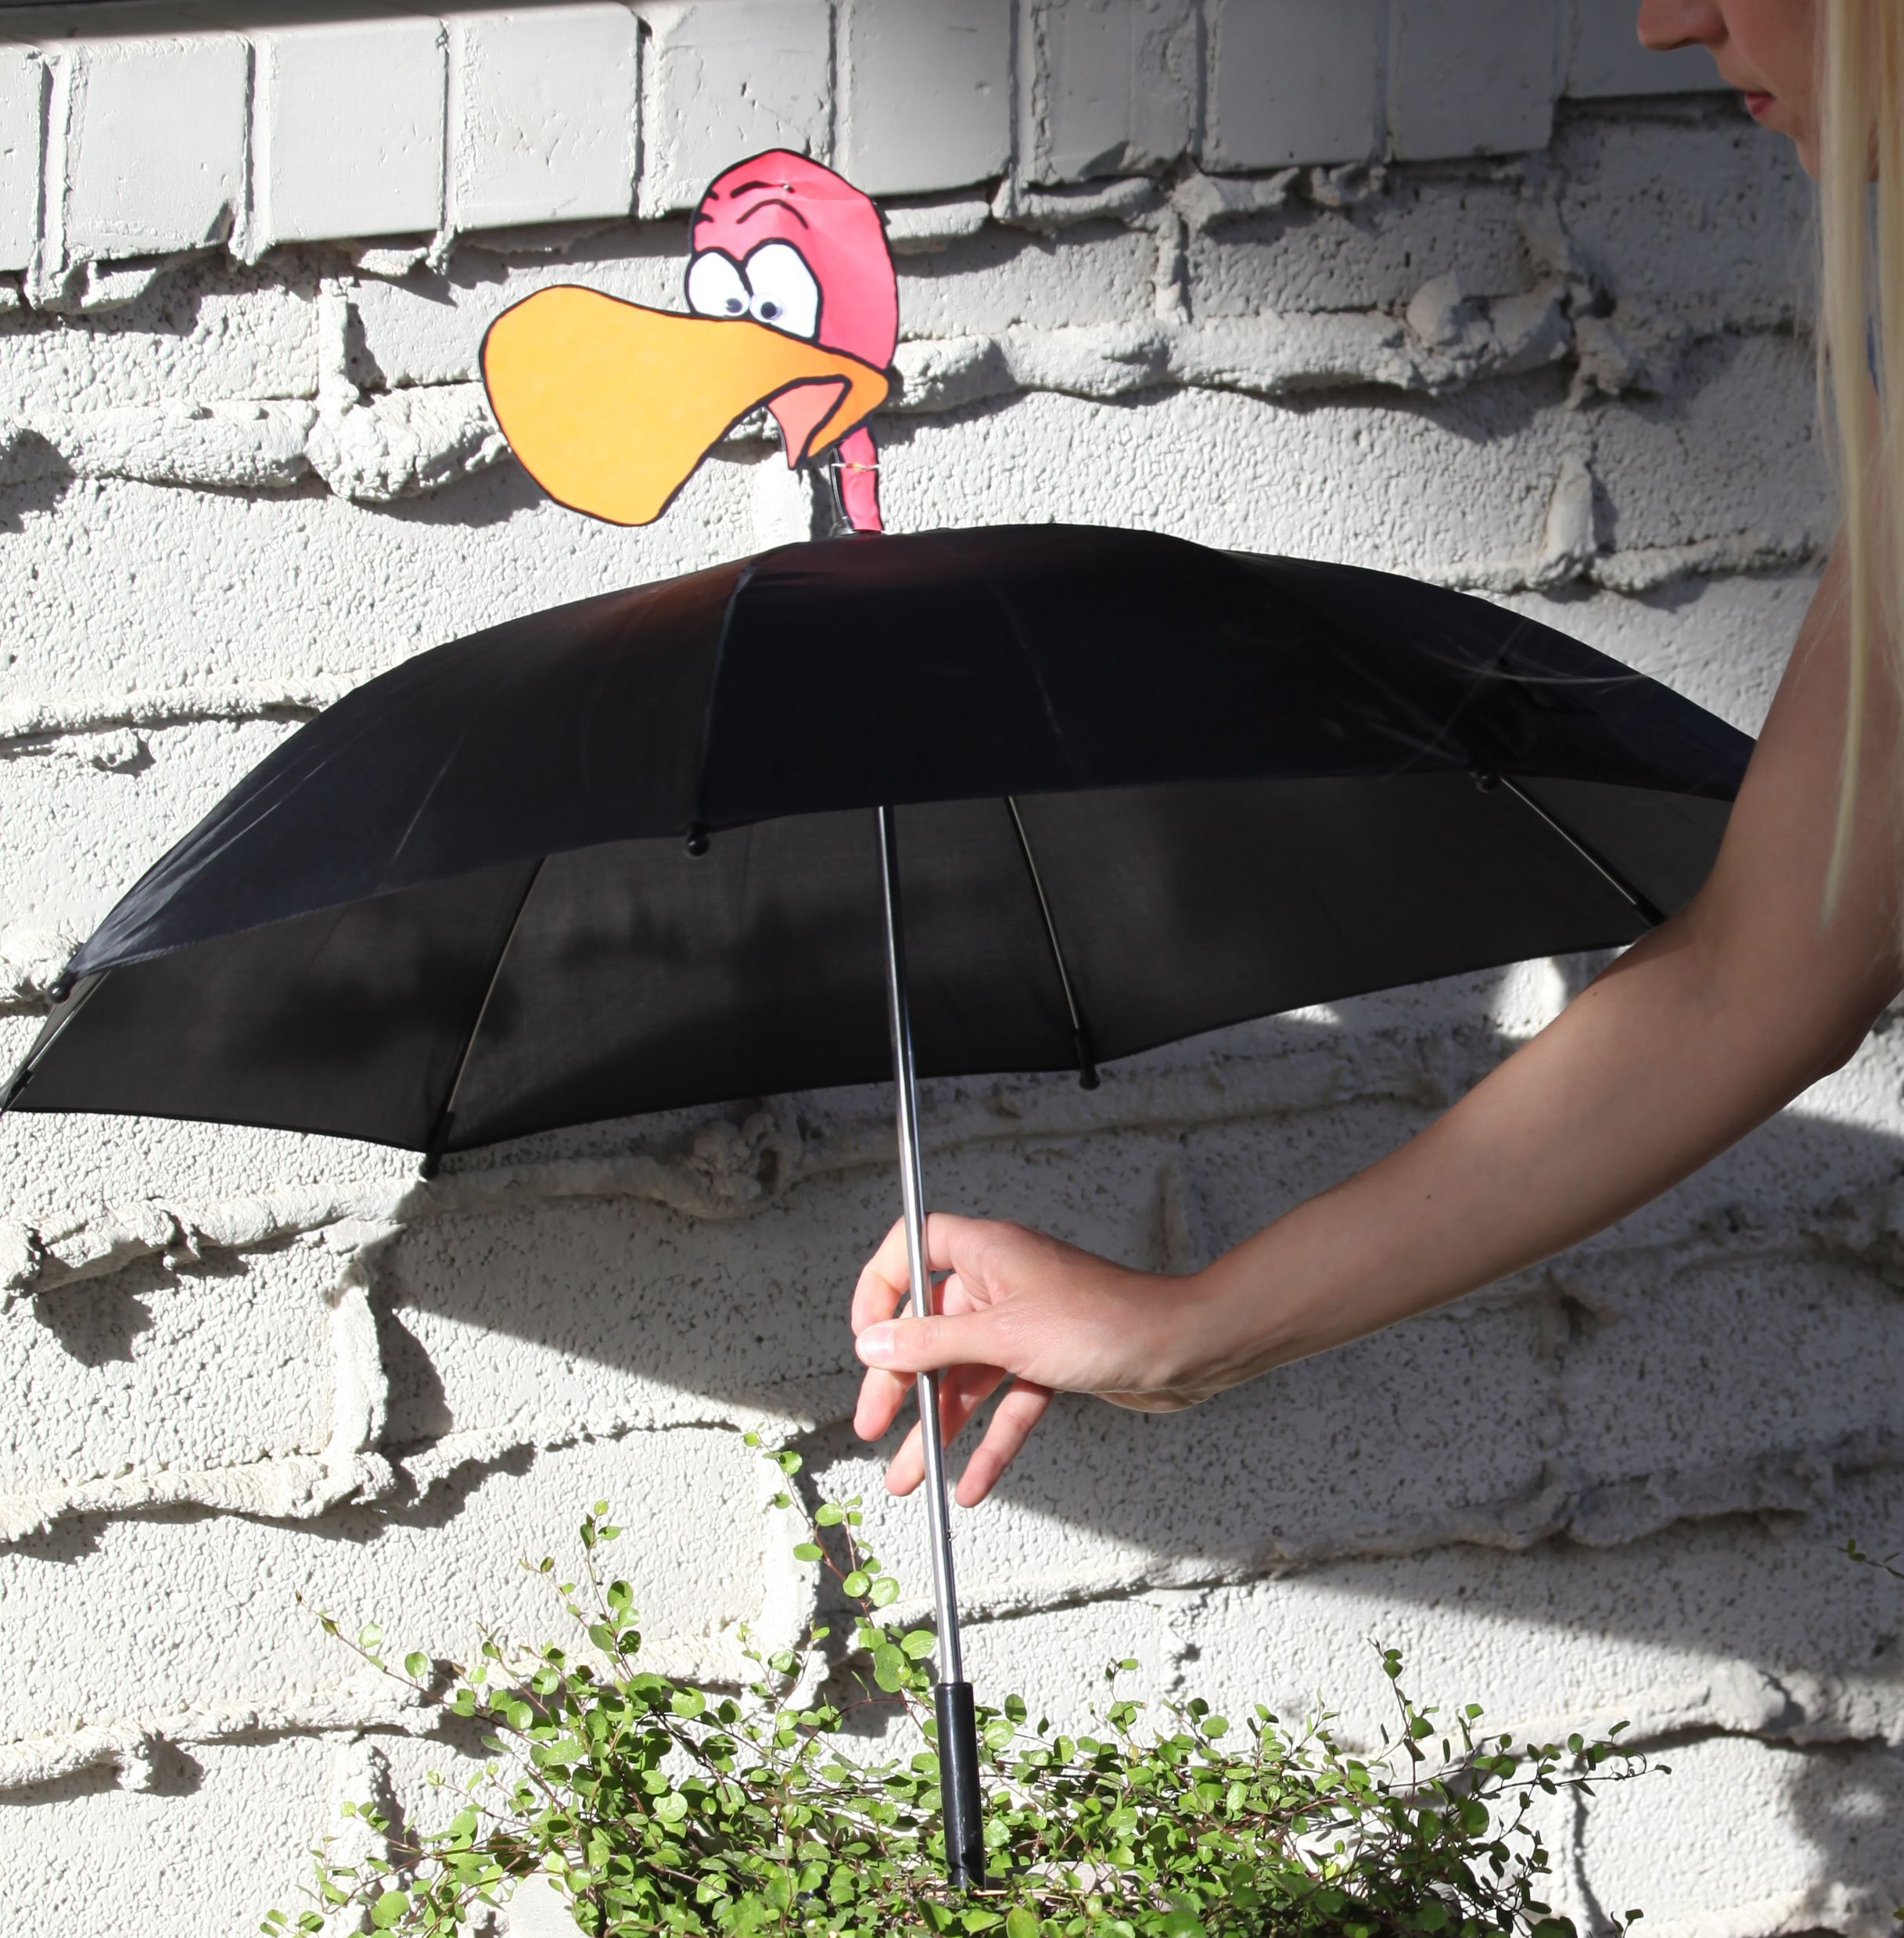 Alice In Wonderland Decorations Umbrella Vulture I Made A Few Of These From Child Size Black Umbrellas Along With Many The Other Curious Creatures